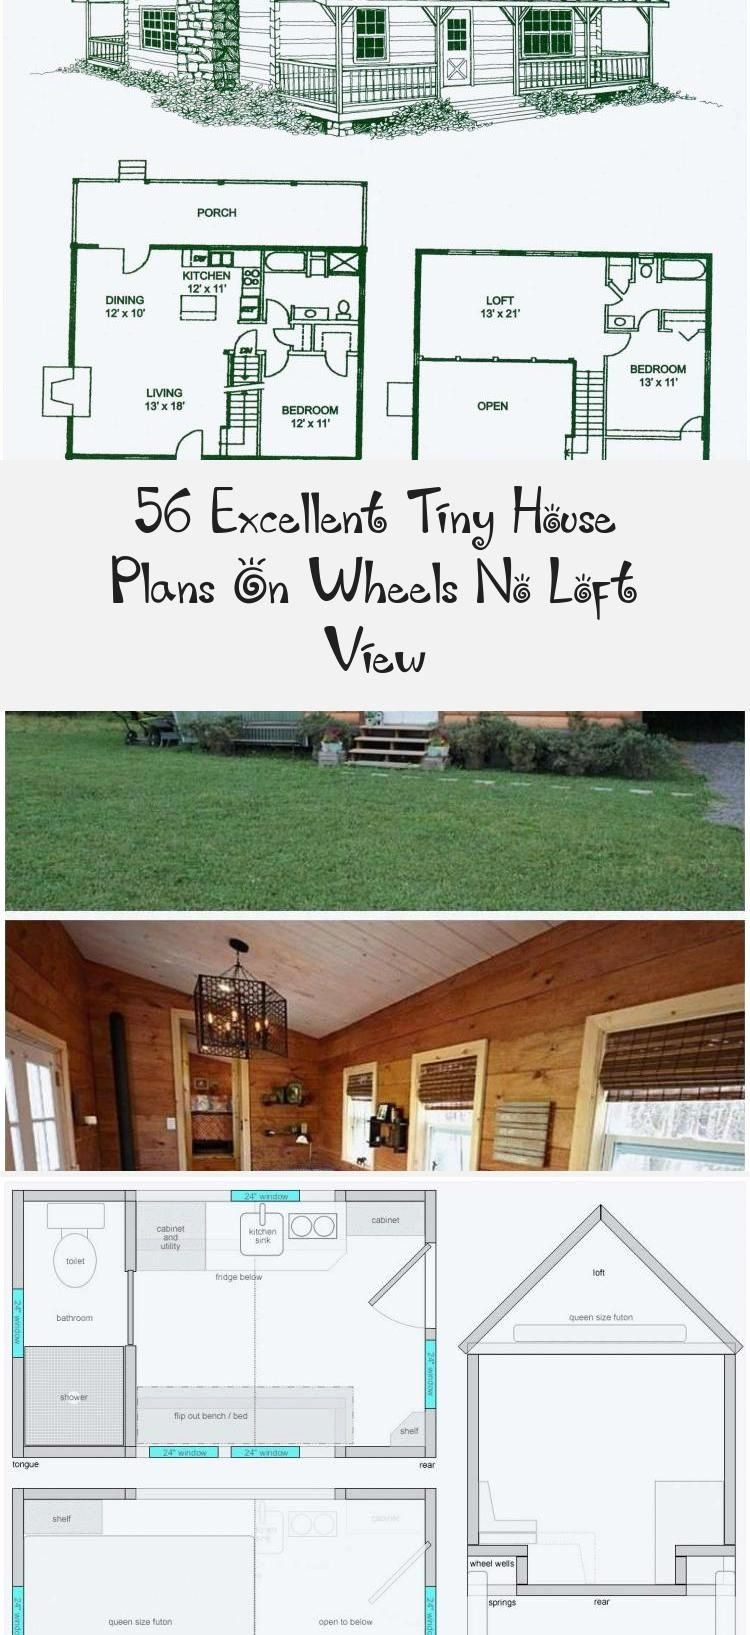 Tiny House Plans No Loft Awesome 56 Excellent Tiny House Plans Wheels No Loft View Small House Open Floor Plan House Plans Tiny House Plans